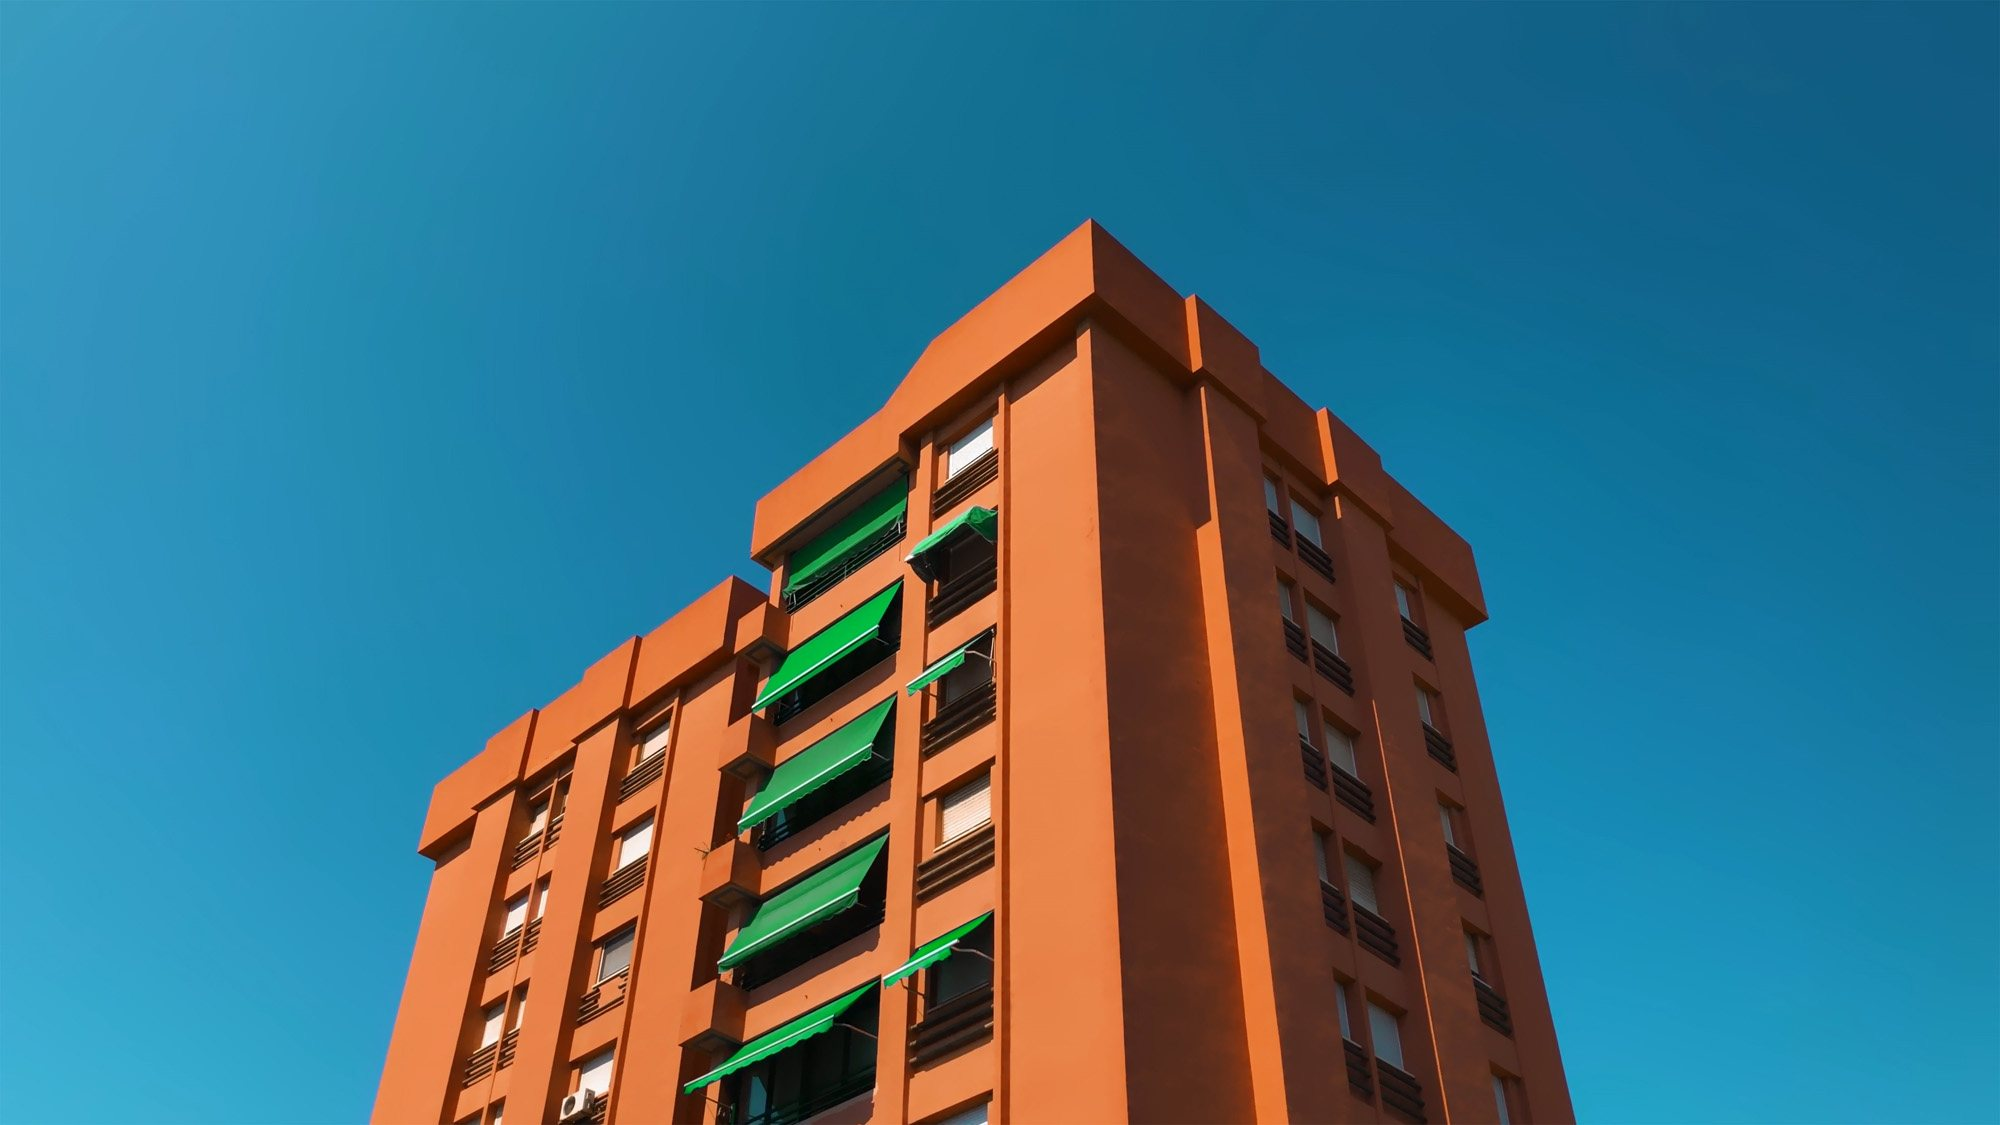 A orange tower block is shot from below, against a blue sky.